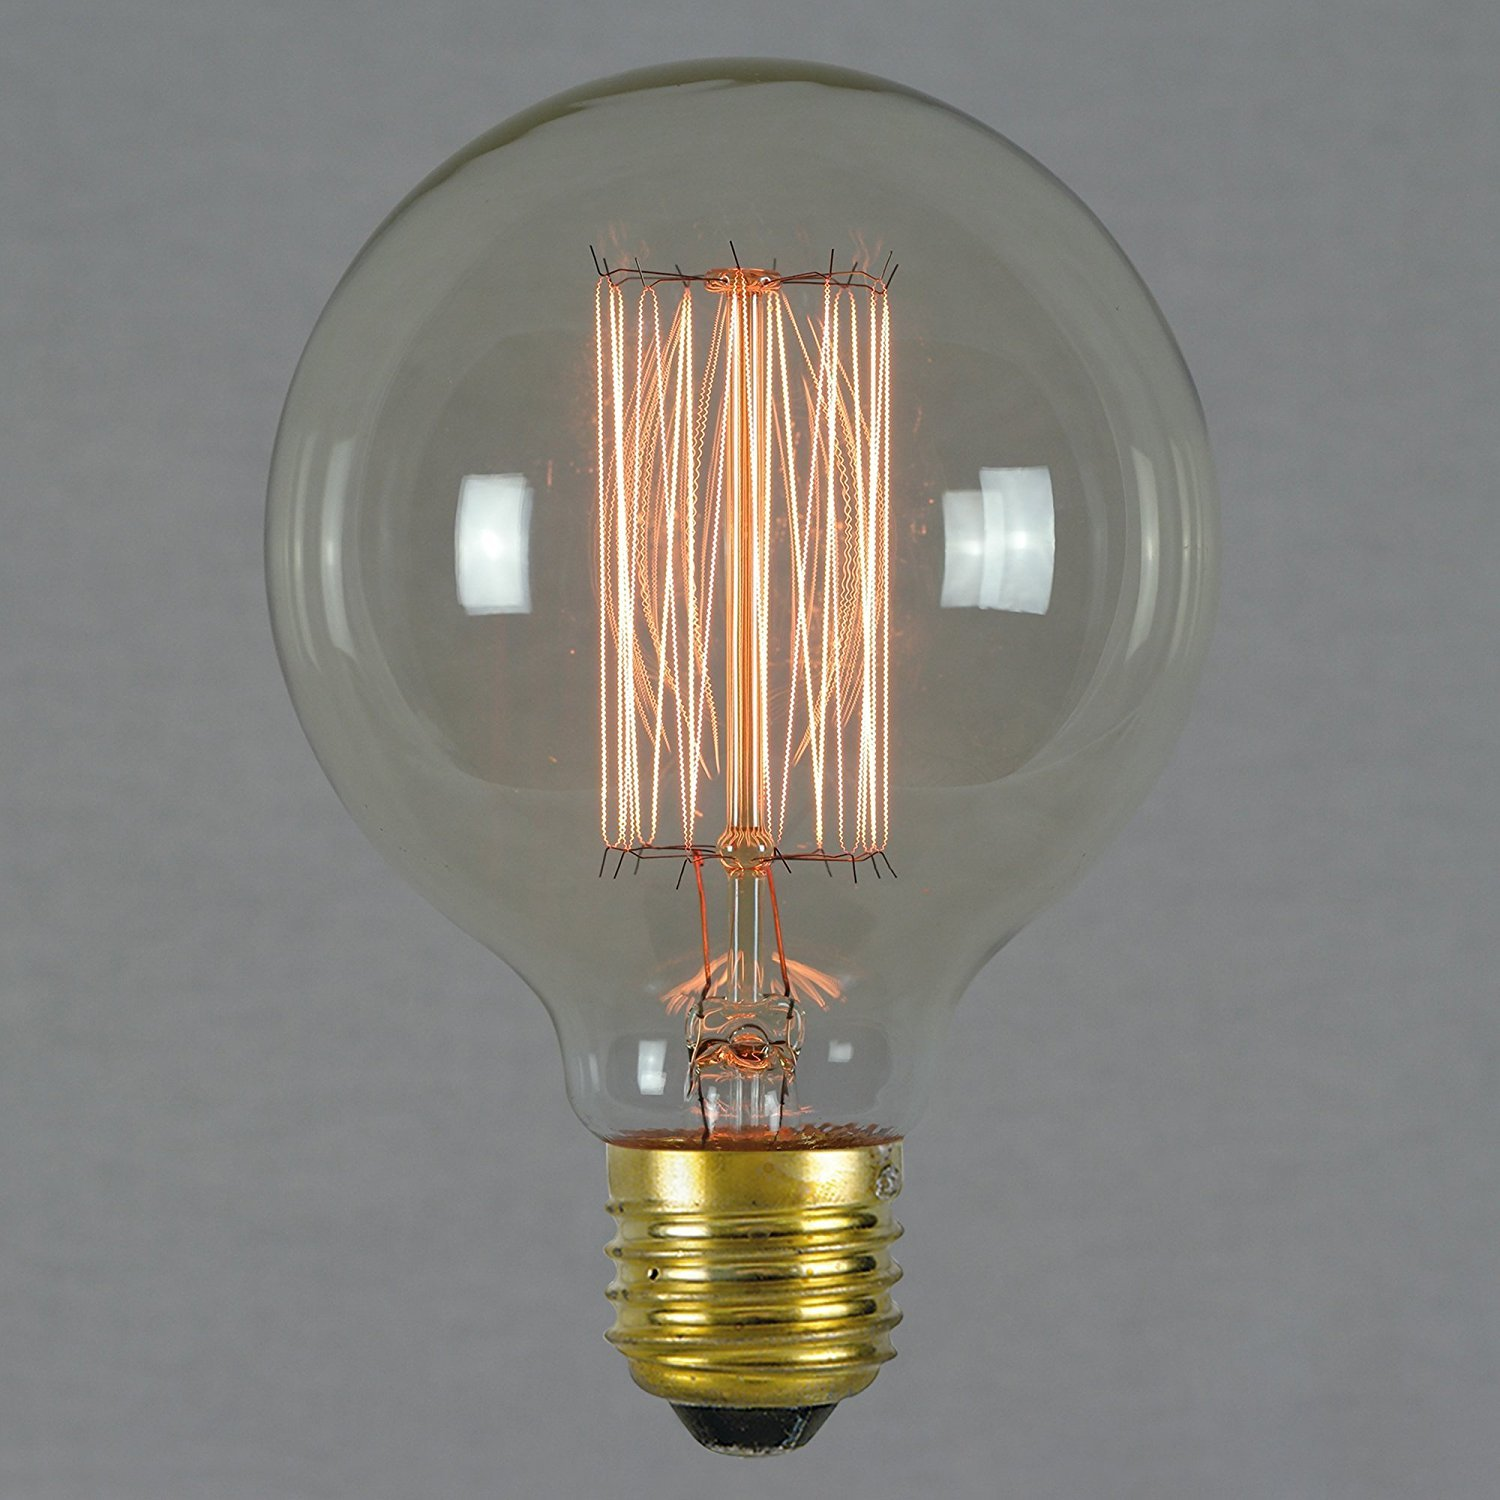 LED Sone Vintage Edison Light Bulbs Retro Old Fashioned Style Screw Bulb Dimmable Decorative Spiral Filament Lamp E27 220-240V 60W Warm White Lights Uk (G95 60W E27)